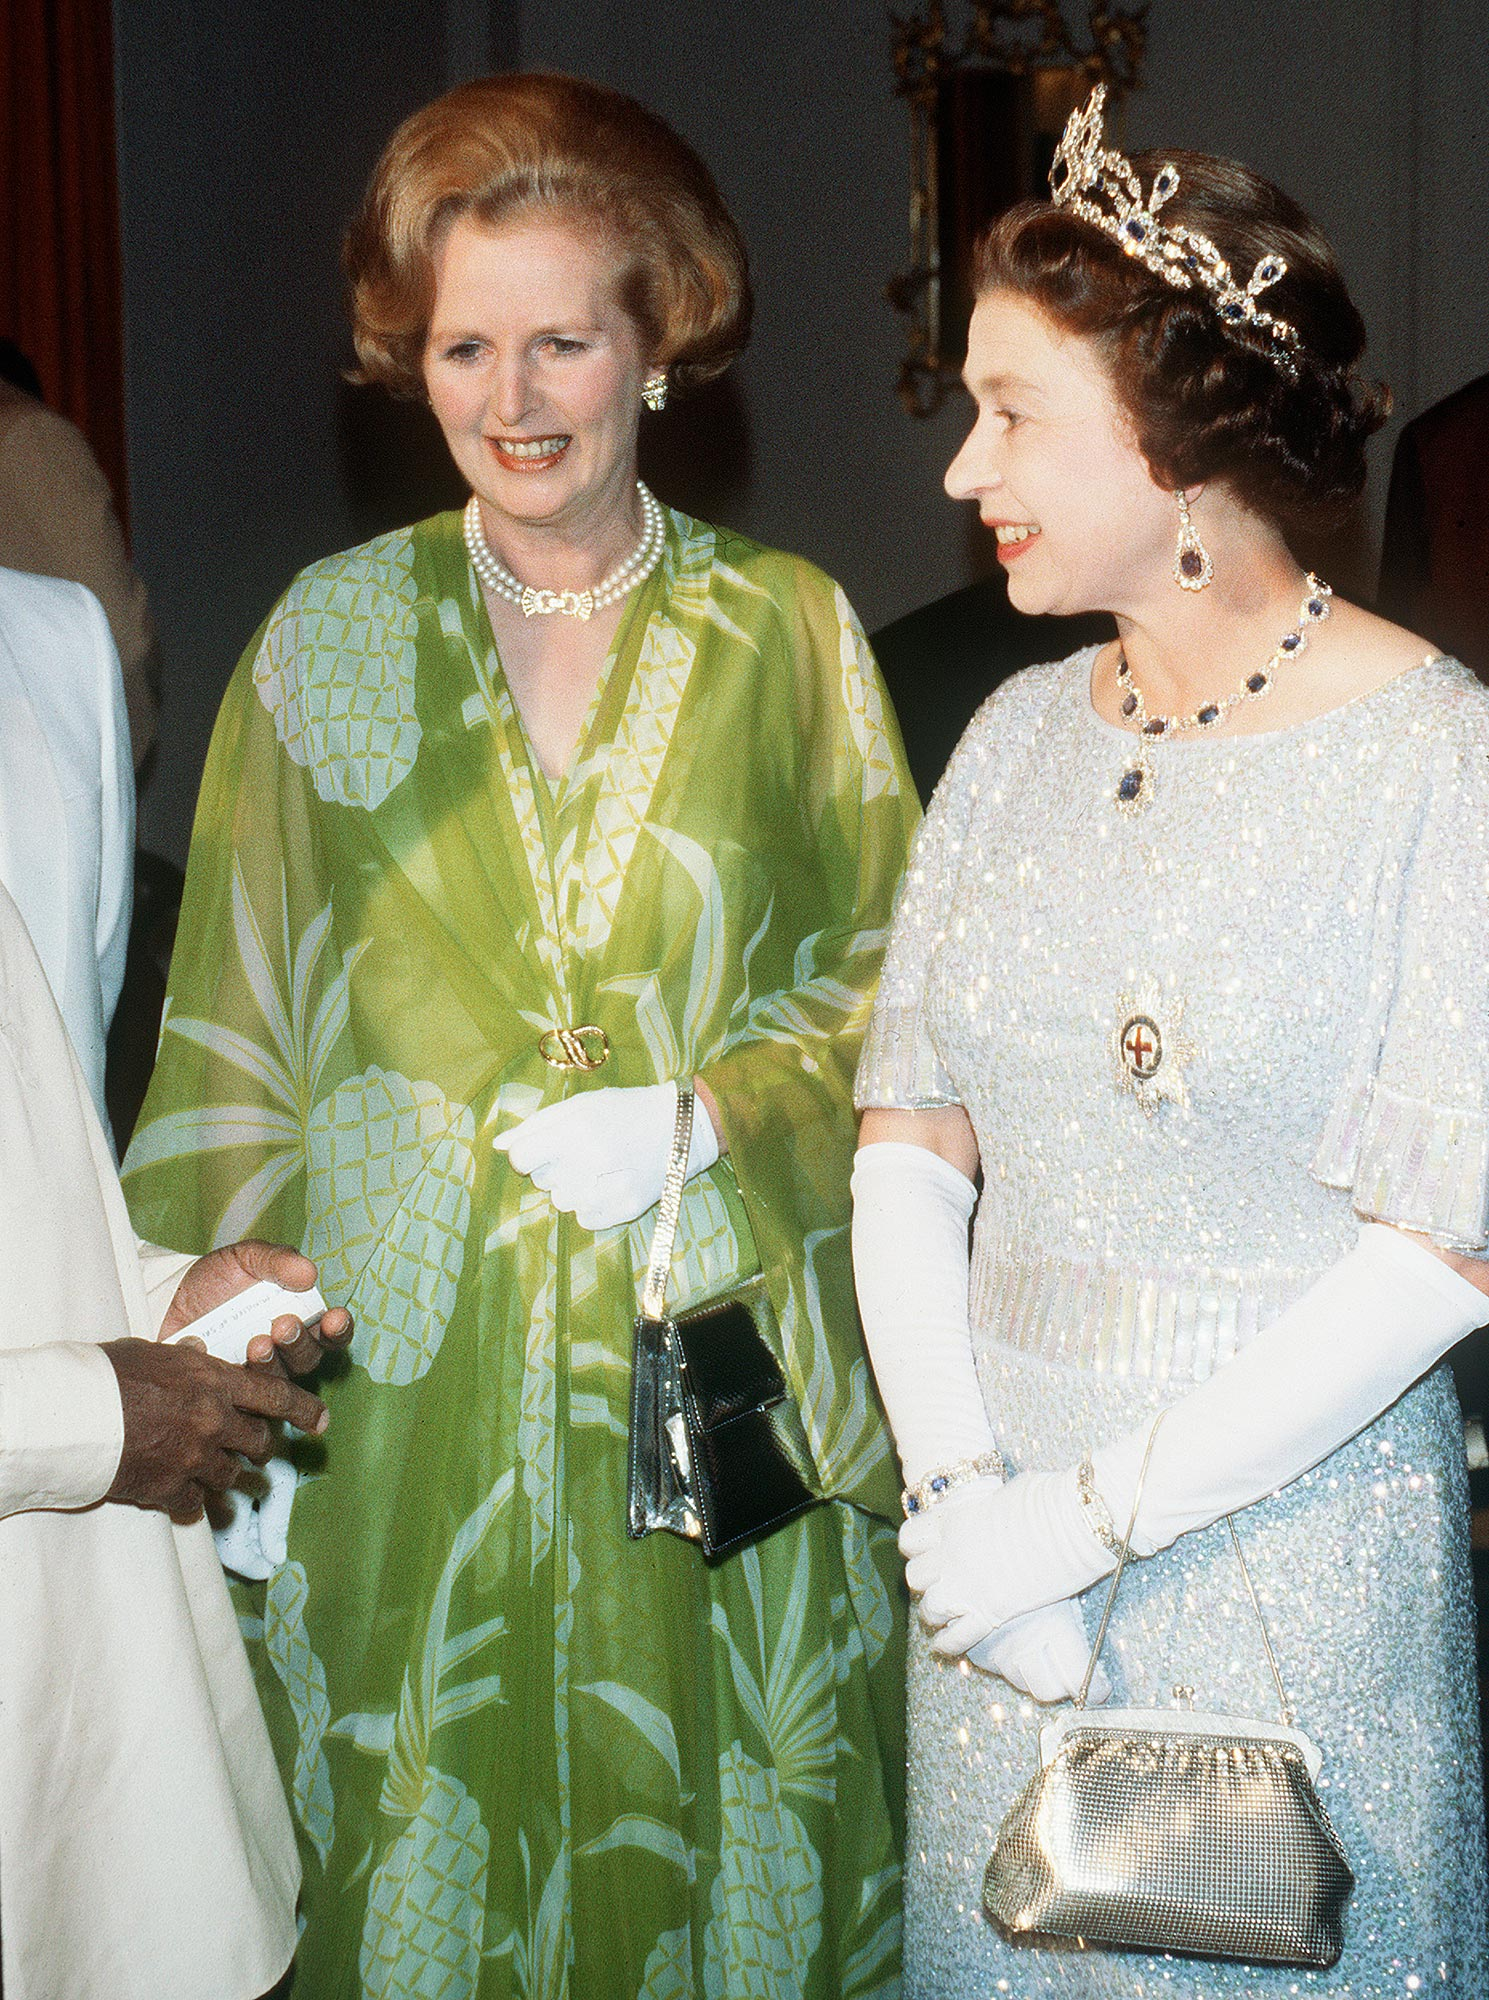 ZMB: Queen Elizabeth II and Margaret Thatcher visit Zambia